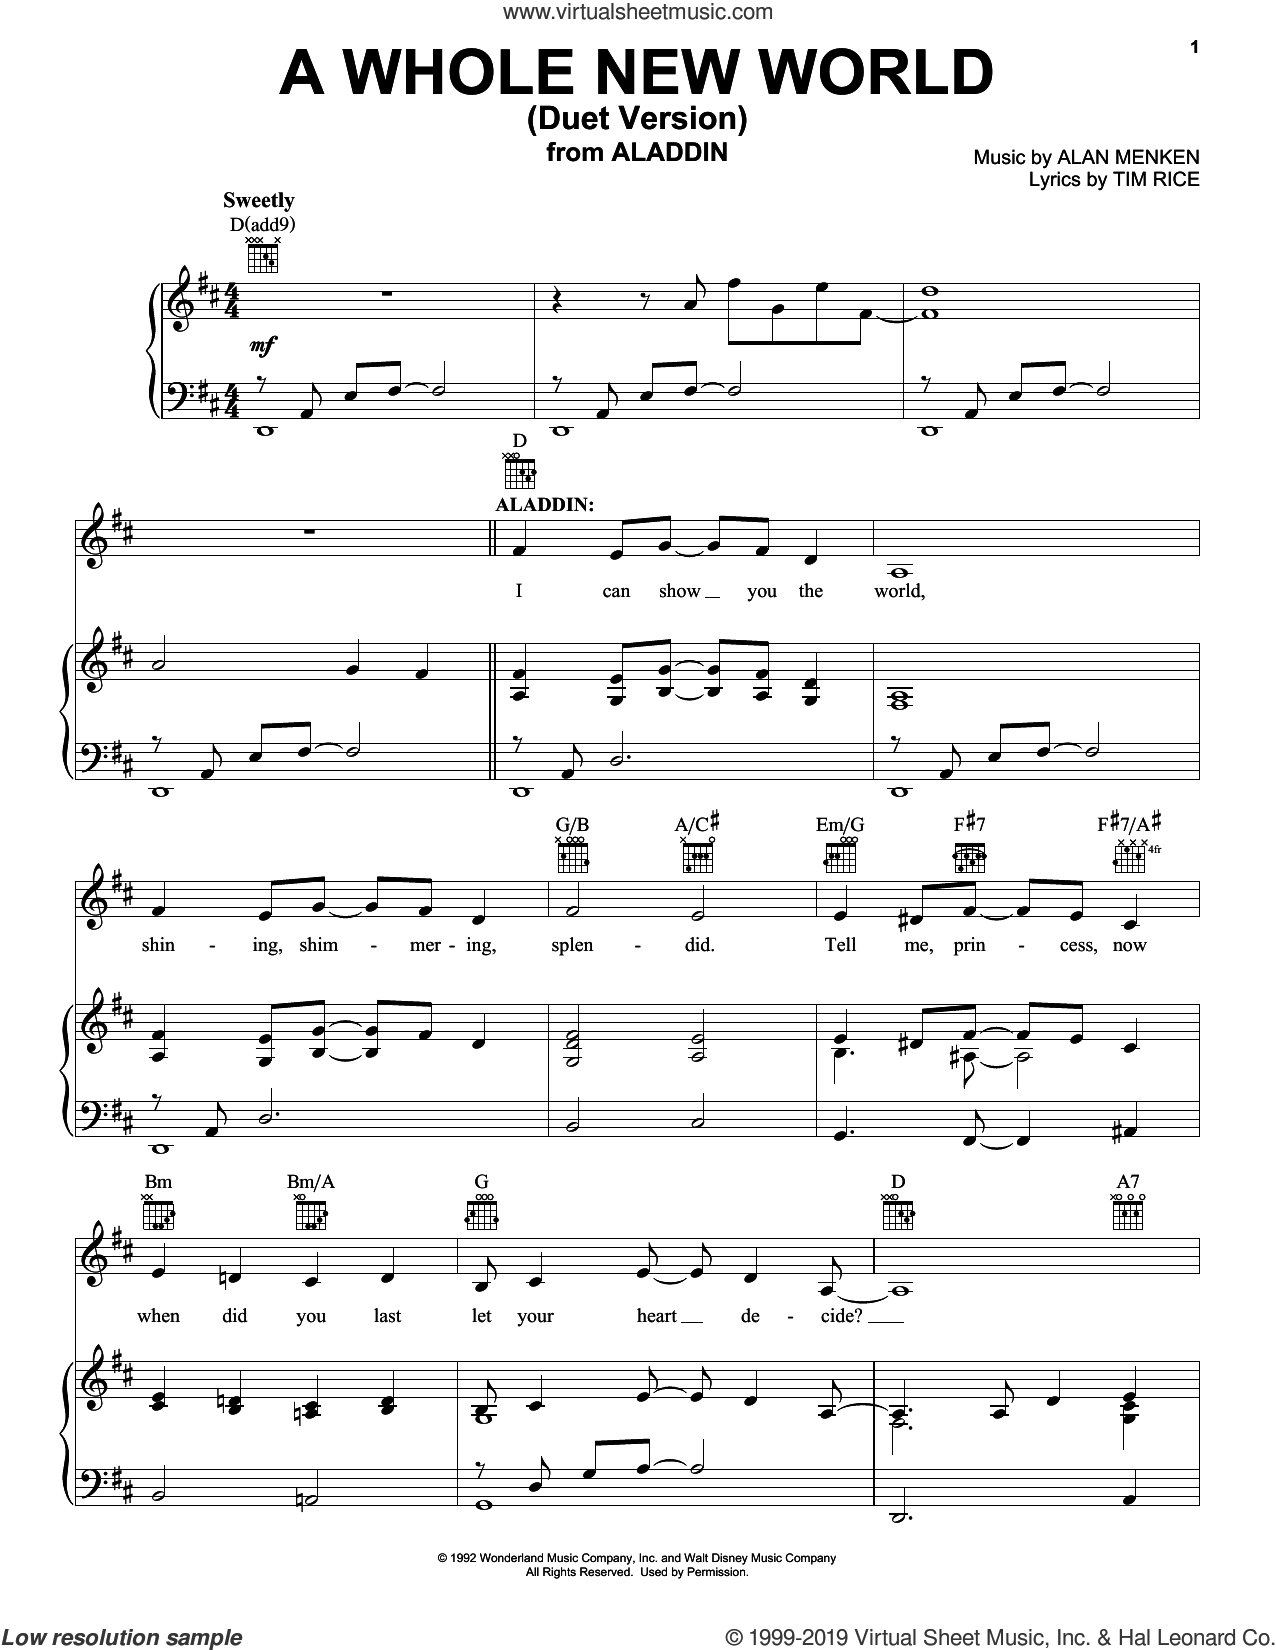 A Whole New World (Duet Version) (from Aladdin) sheet music for voice, piano or guitar by Alan Menken, Howard Ashman and Tim Rice, intermediate skill level